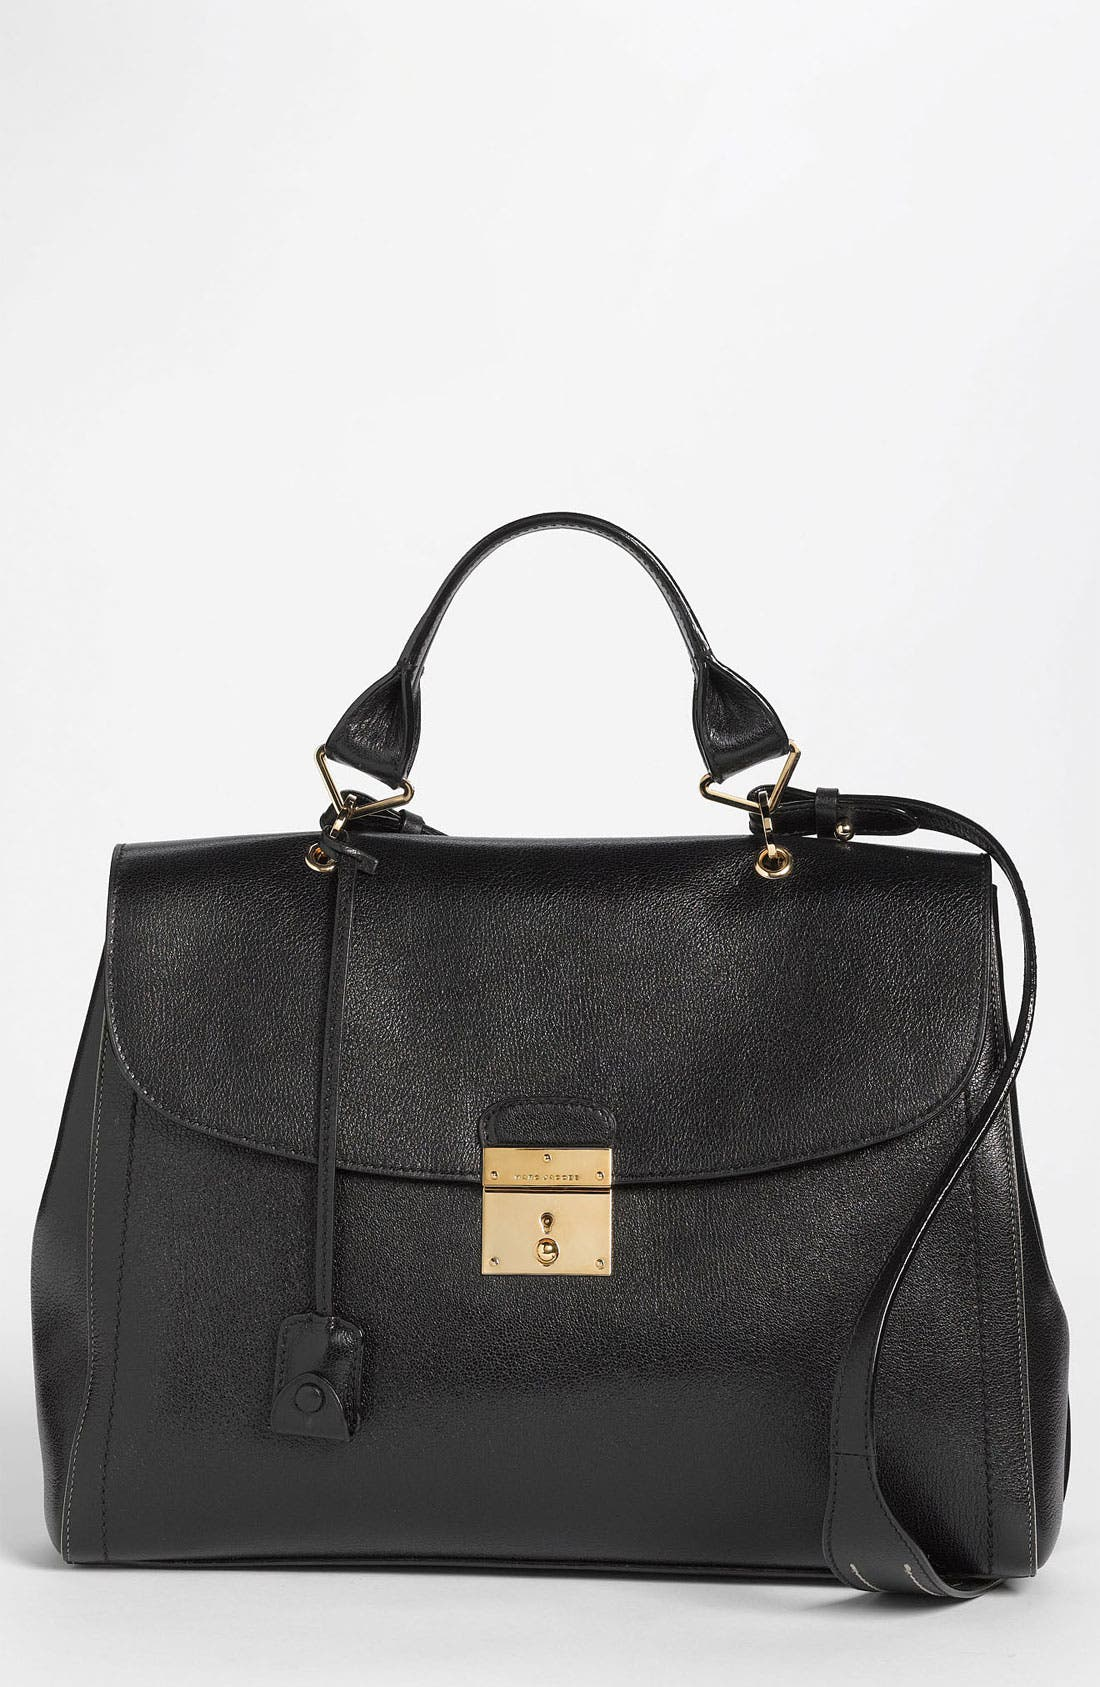 Alternate Image 1 Selected - MARC JACOBS '1984' Leather Satchel